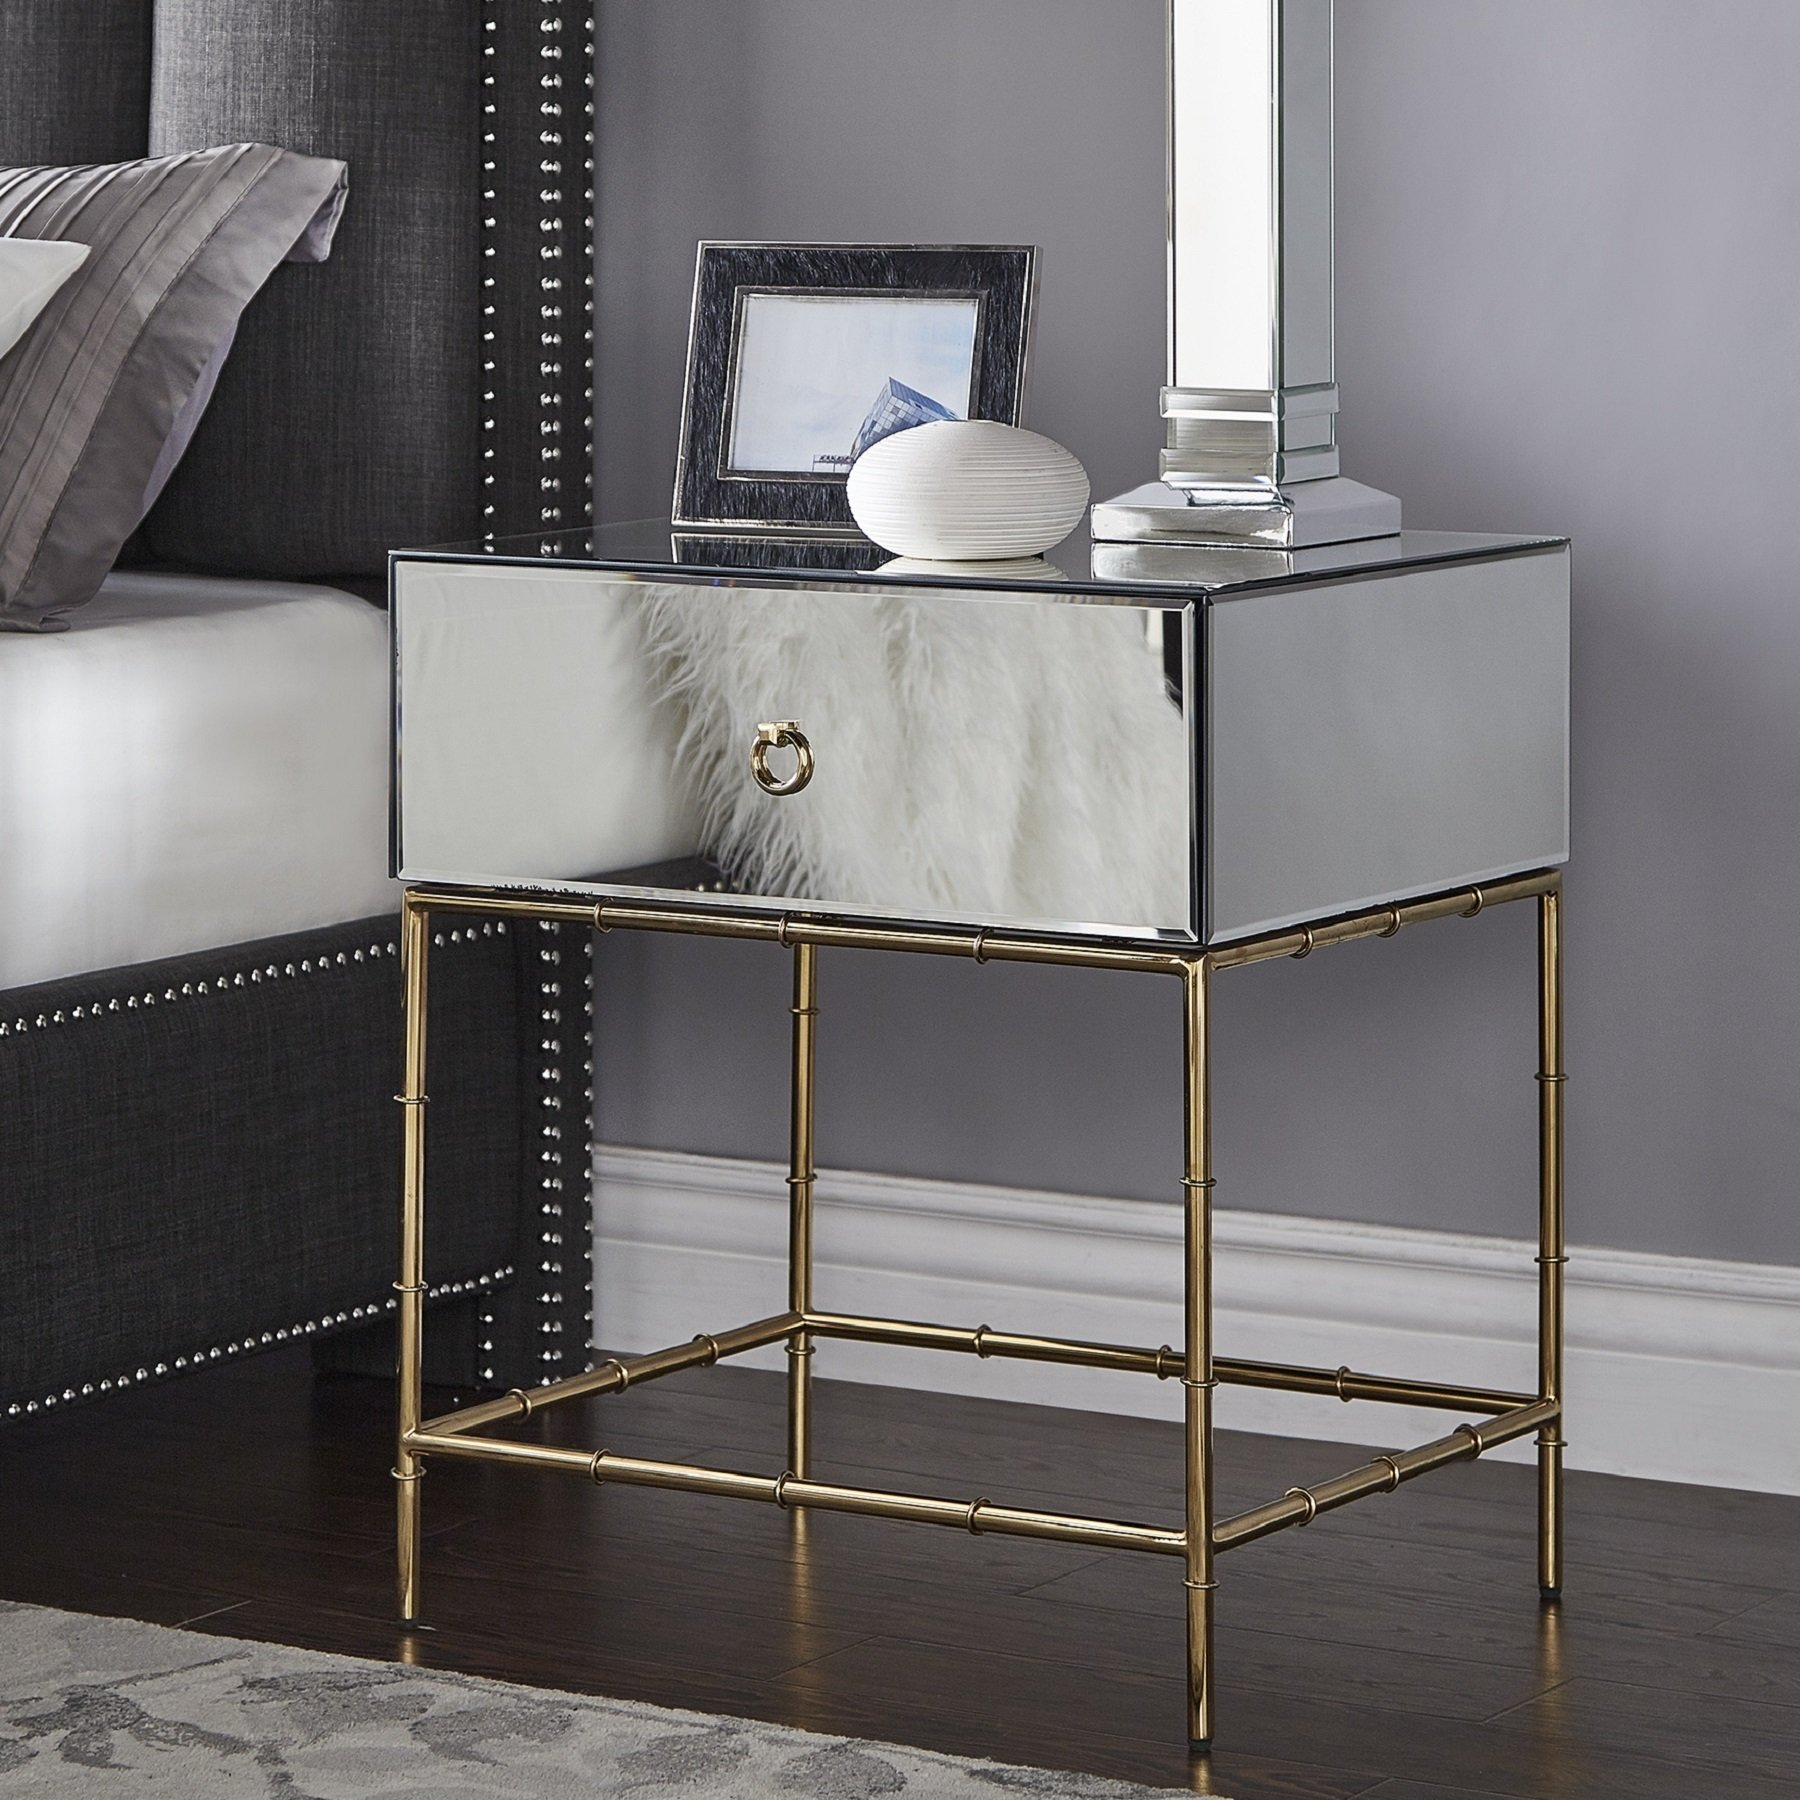 wade mirrored accent table with gold finish base inspire bold tables matching mirrors kitchen counter semi circle coffee black piece set diy sofa modern dressing chair target